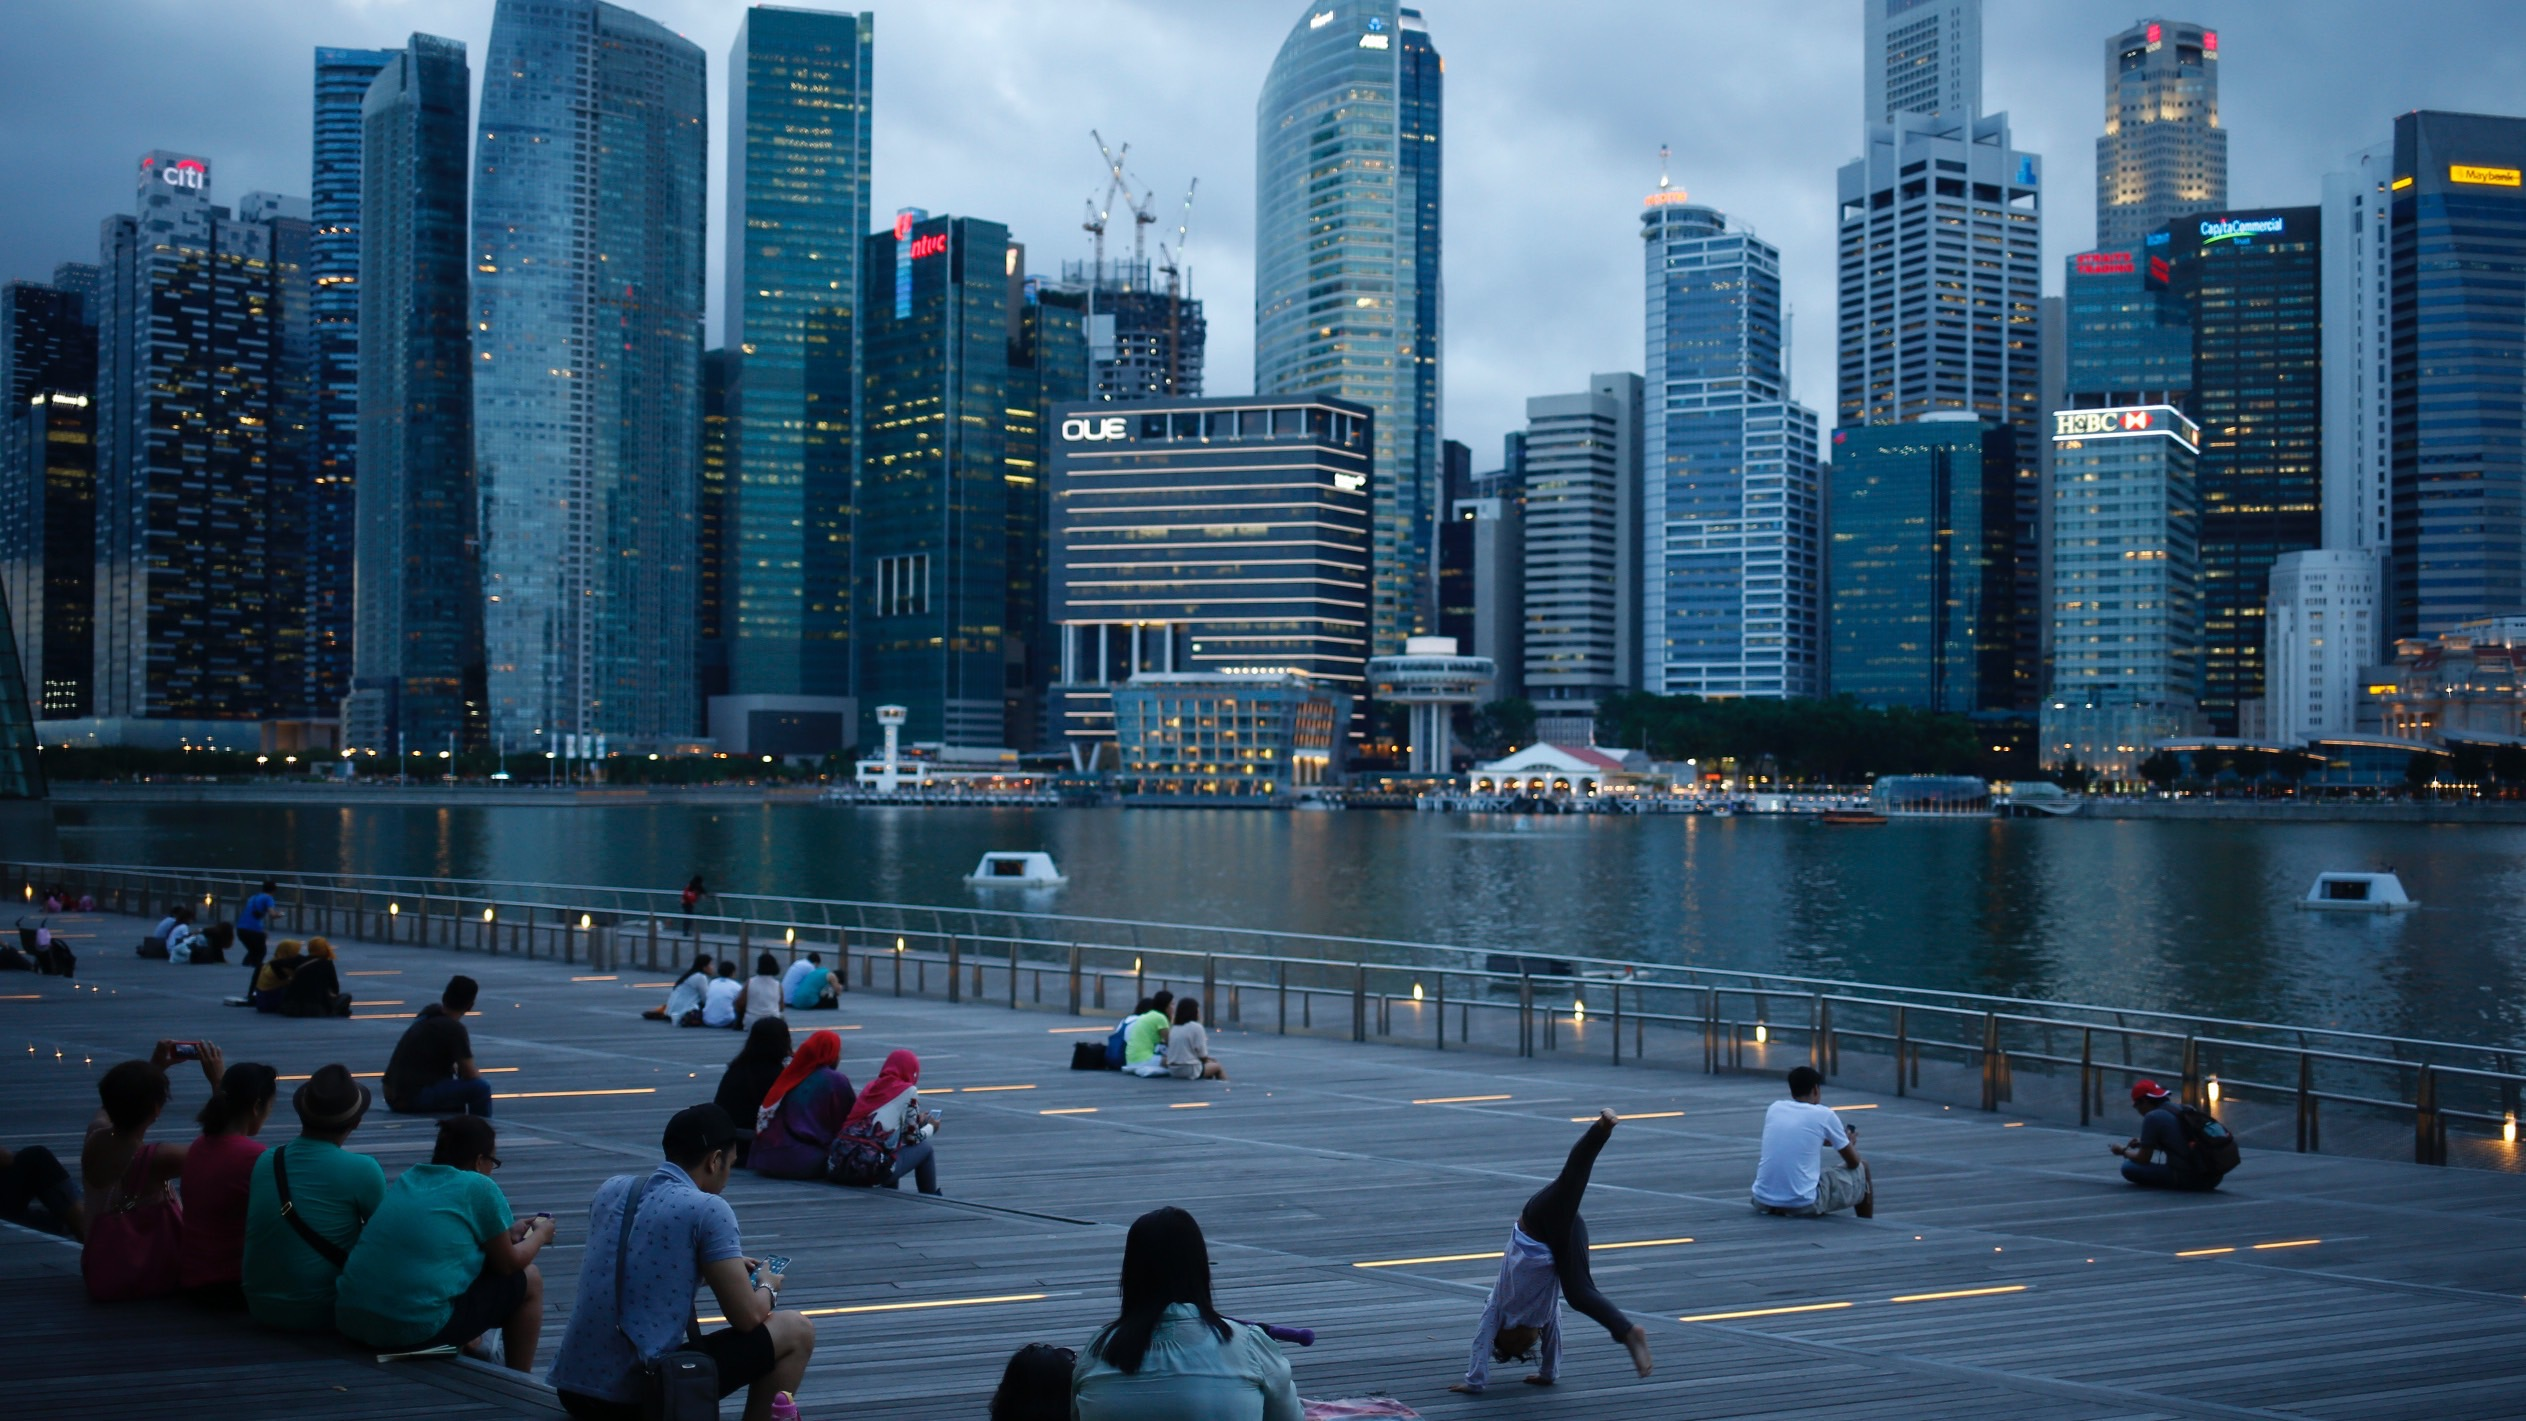 People wait to watch a laser light show along Marina Bay overlooking the central business district in the evening in Singapore